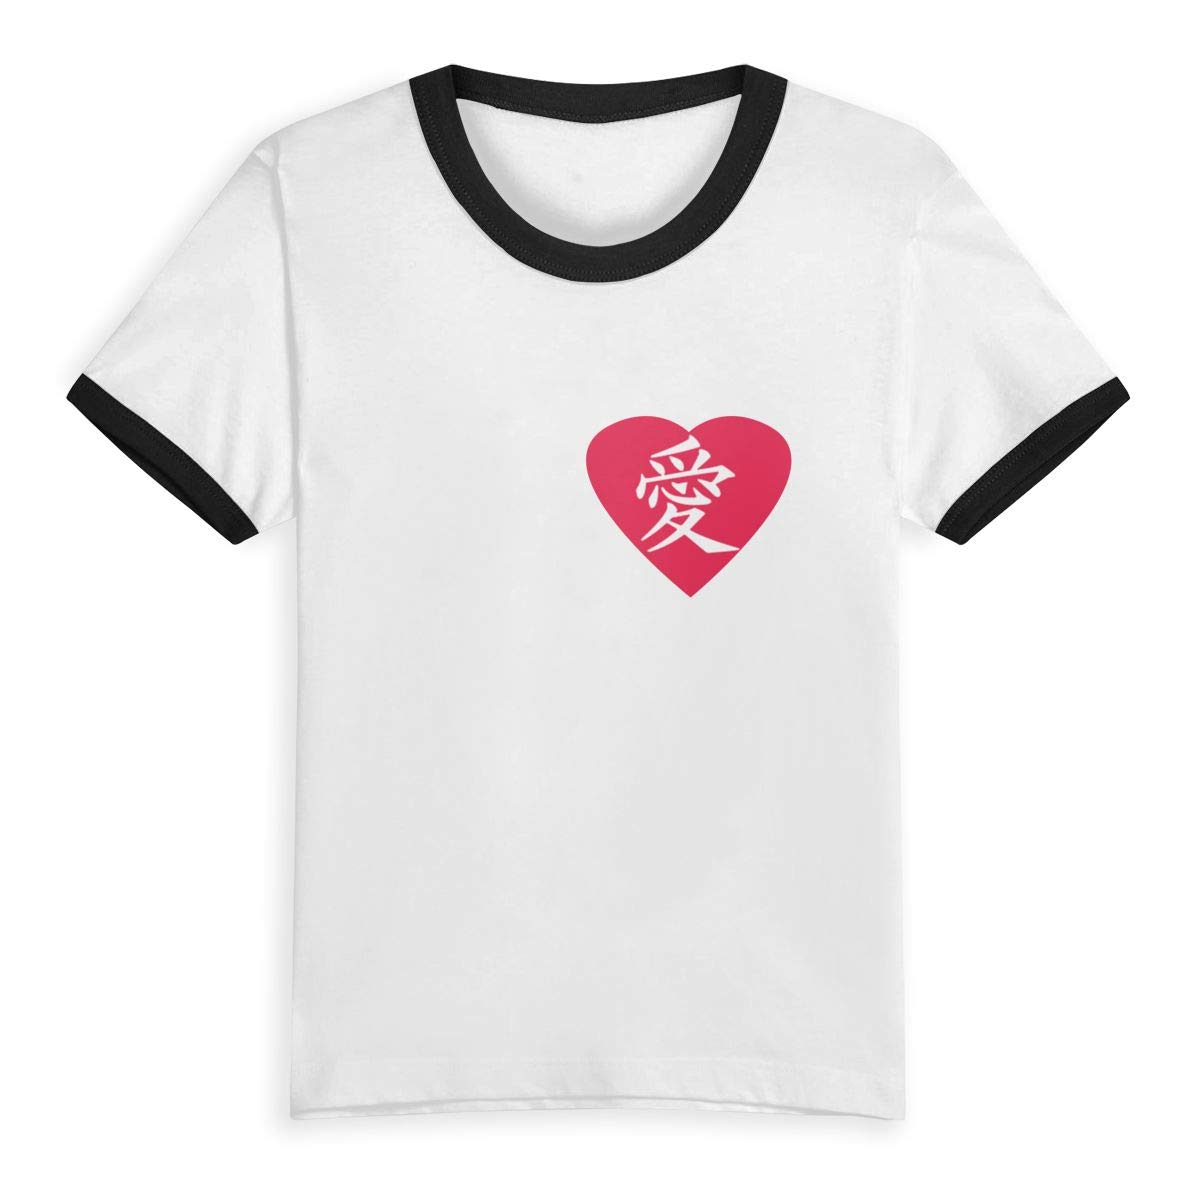 HYBDX9T Toddler Baby Girl Tree of Life with Japan Flag Funny Short Sleeve Cotton T Shirts Basic Tops Tee Clothes